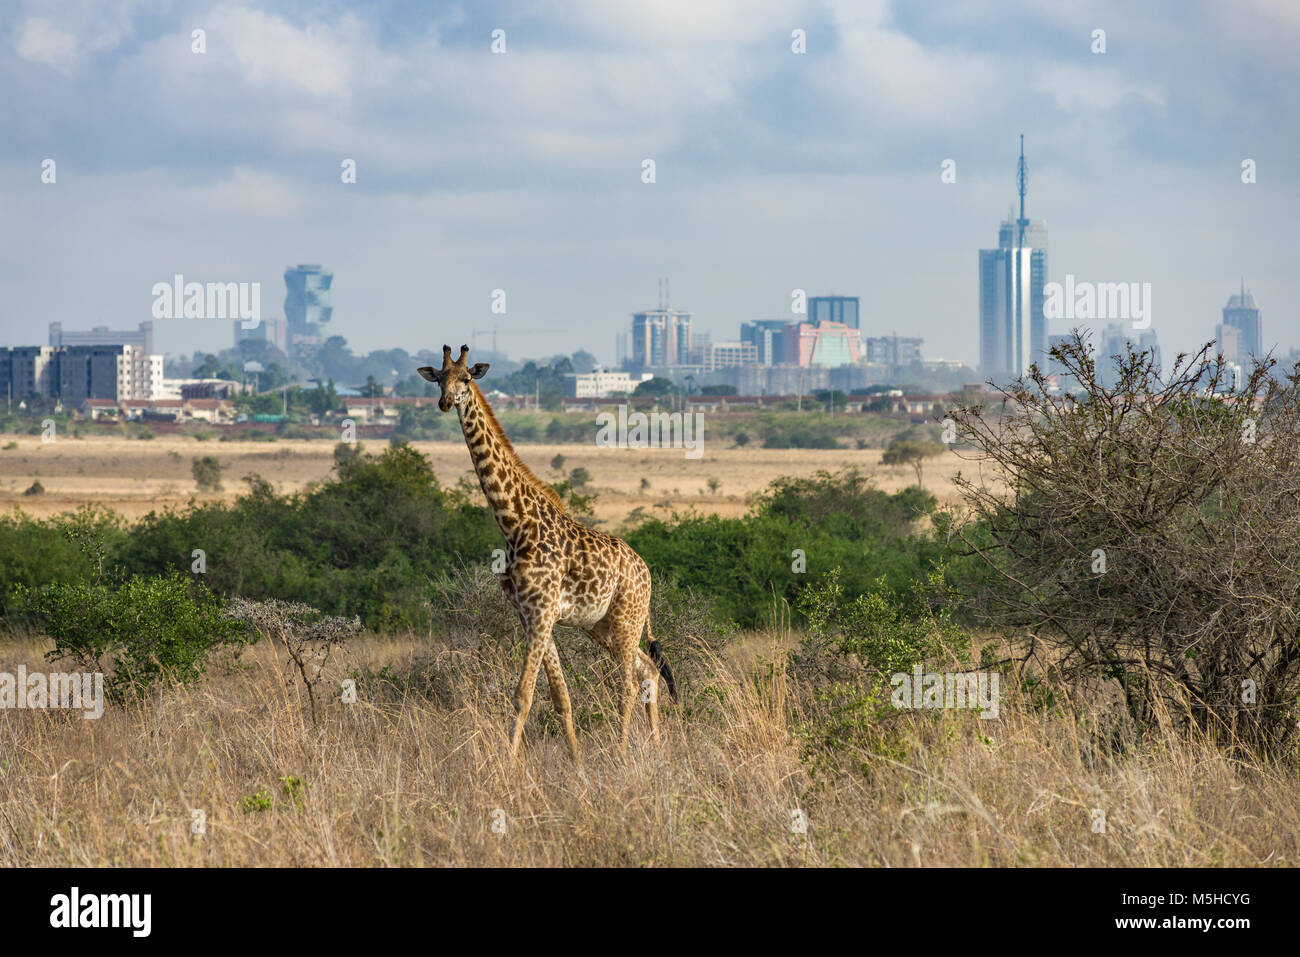 A single Masai giraffe (Giraffa camelopardalis tippelskirchi) walking through tall dry grass with the Nairobi city - Stock Image